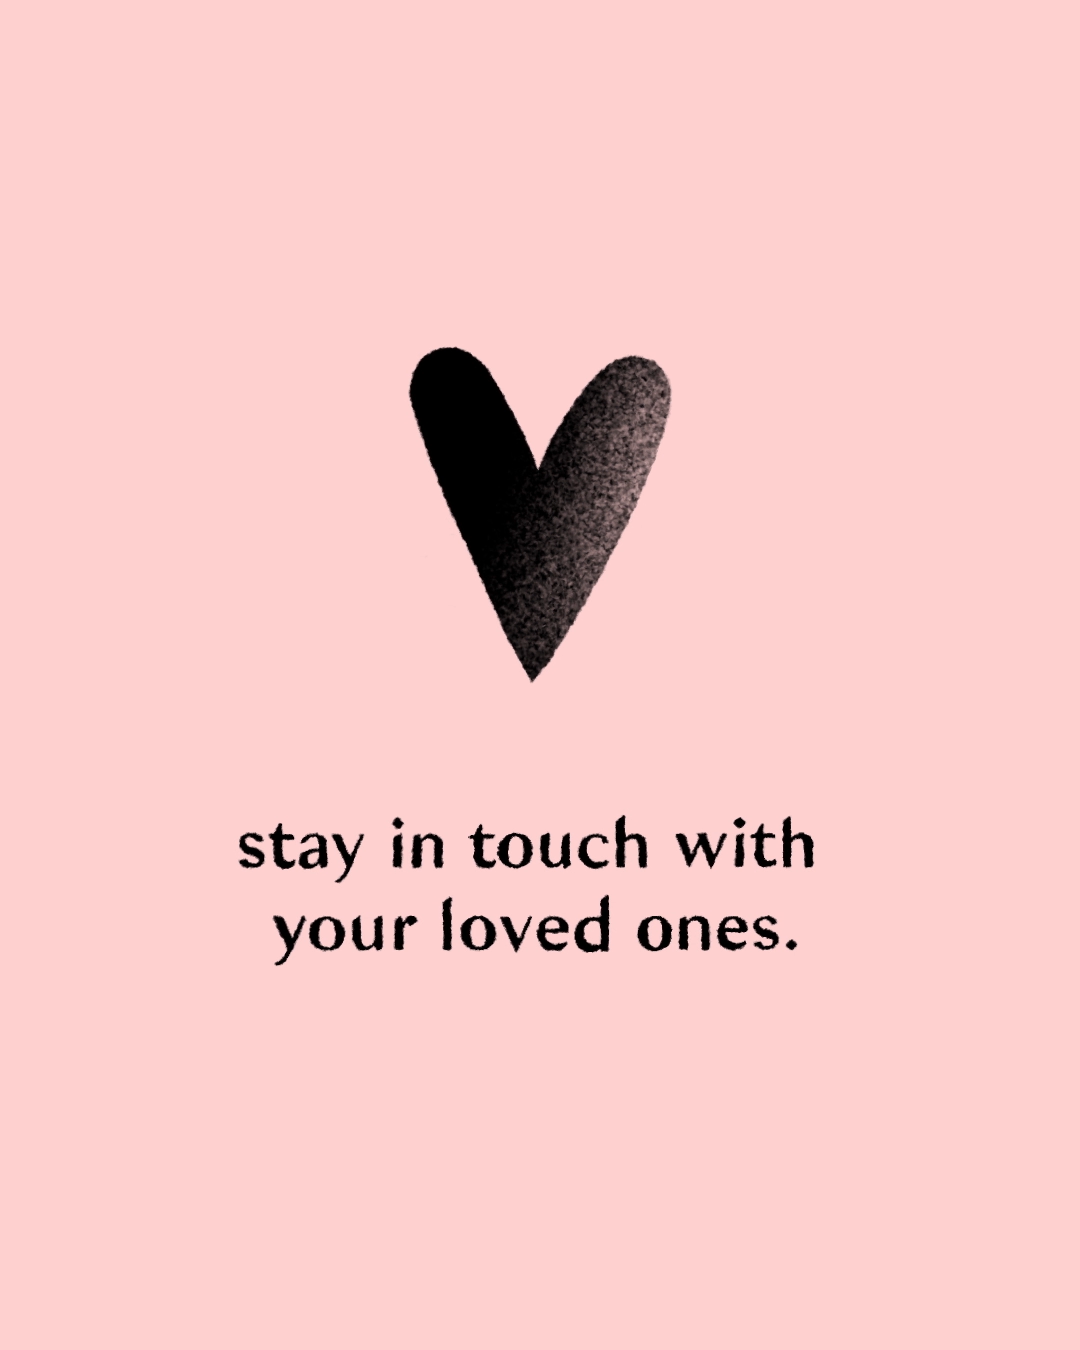 stay in touch with your loved ones (0-00-06-06)